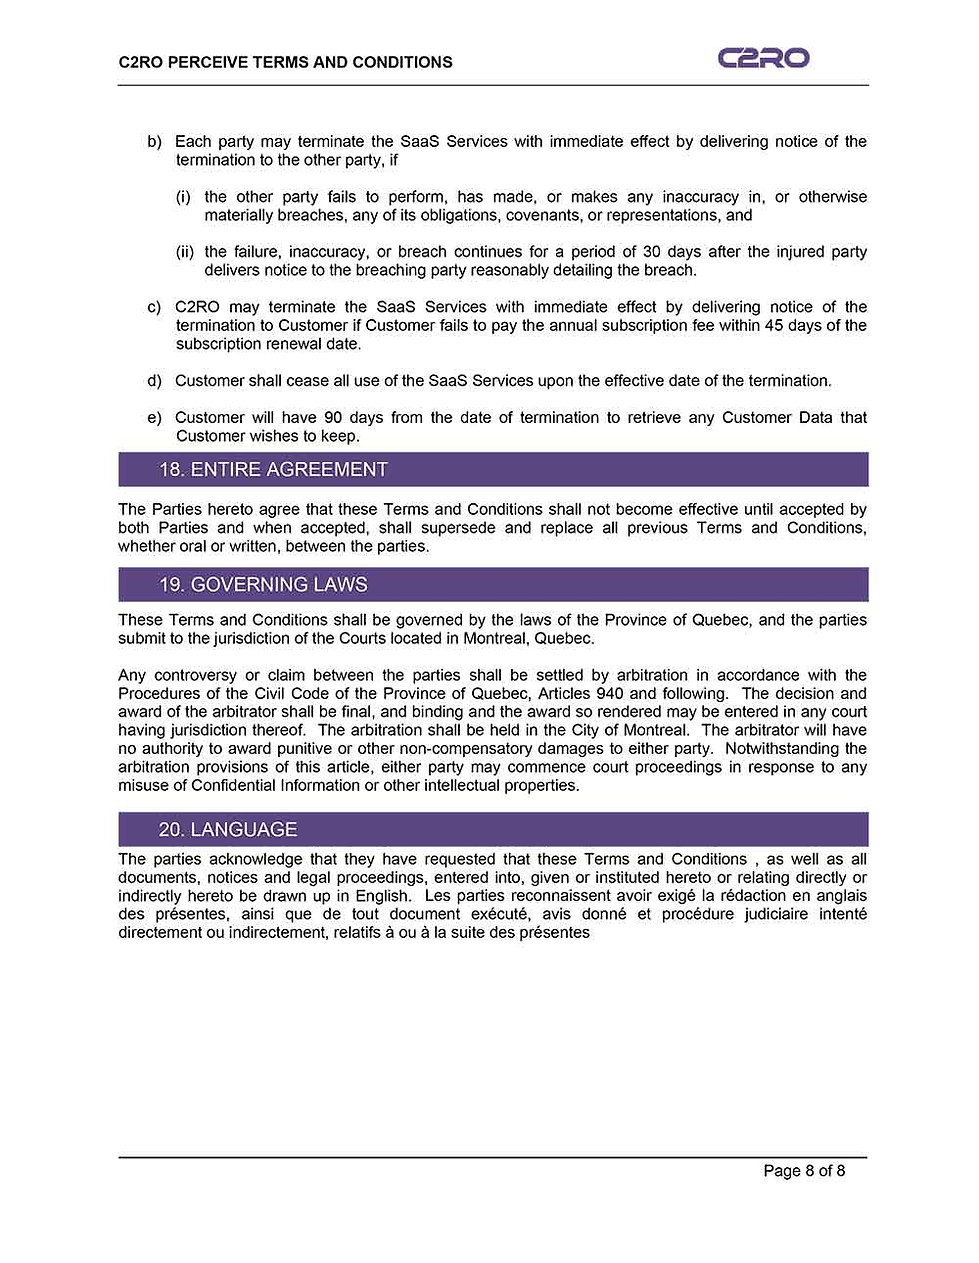 Terms-and-conditions-p8.jpg